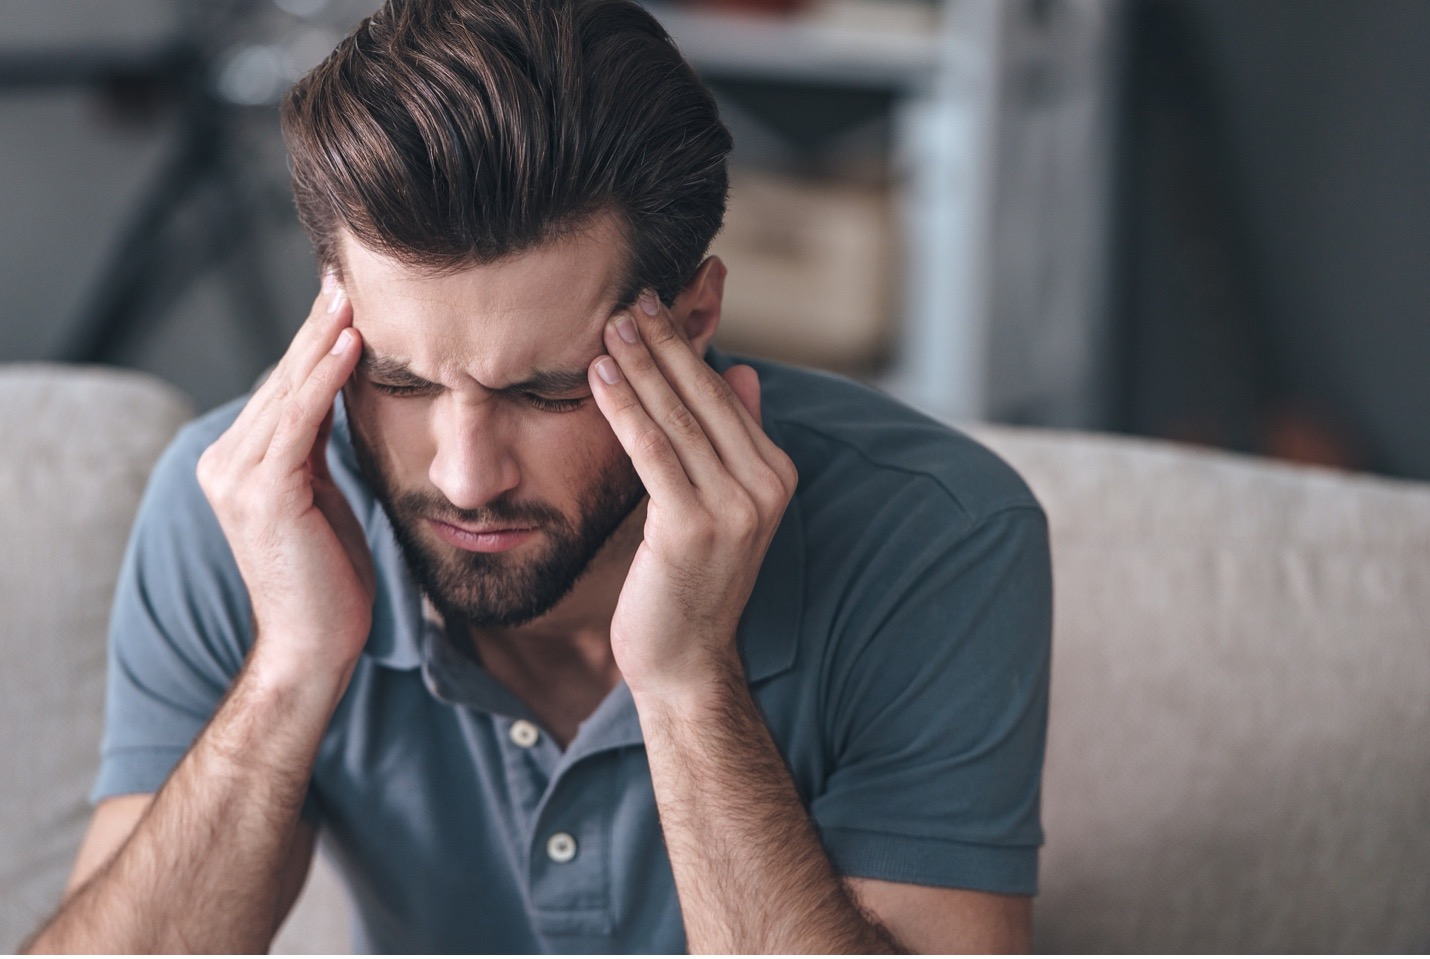 man with hands on the side of his head looking upset